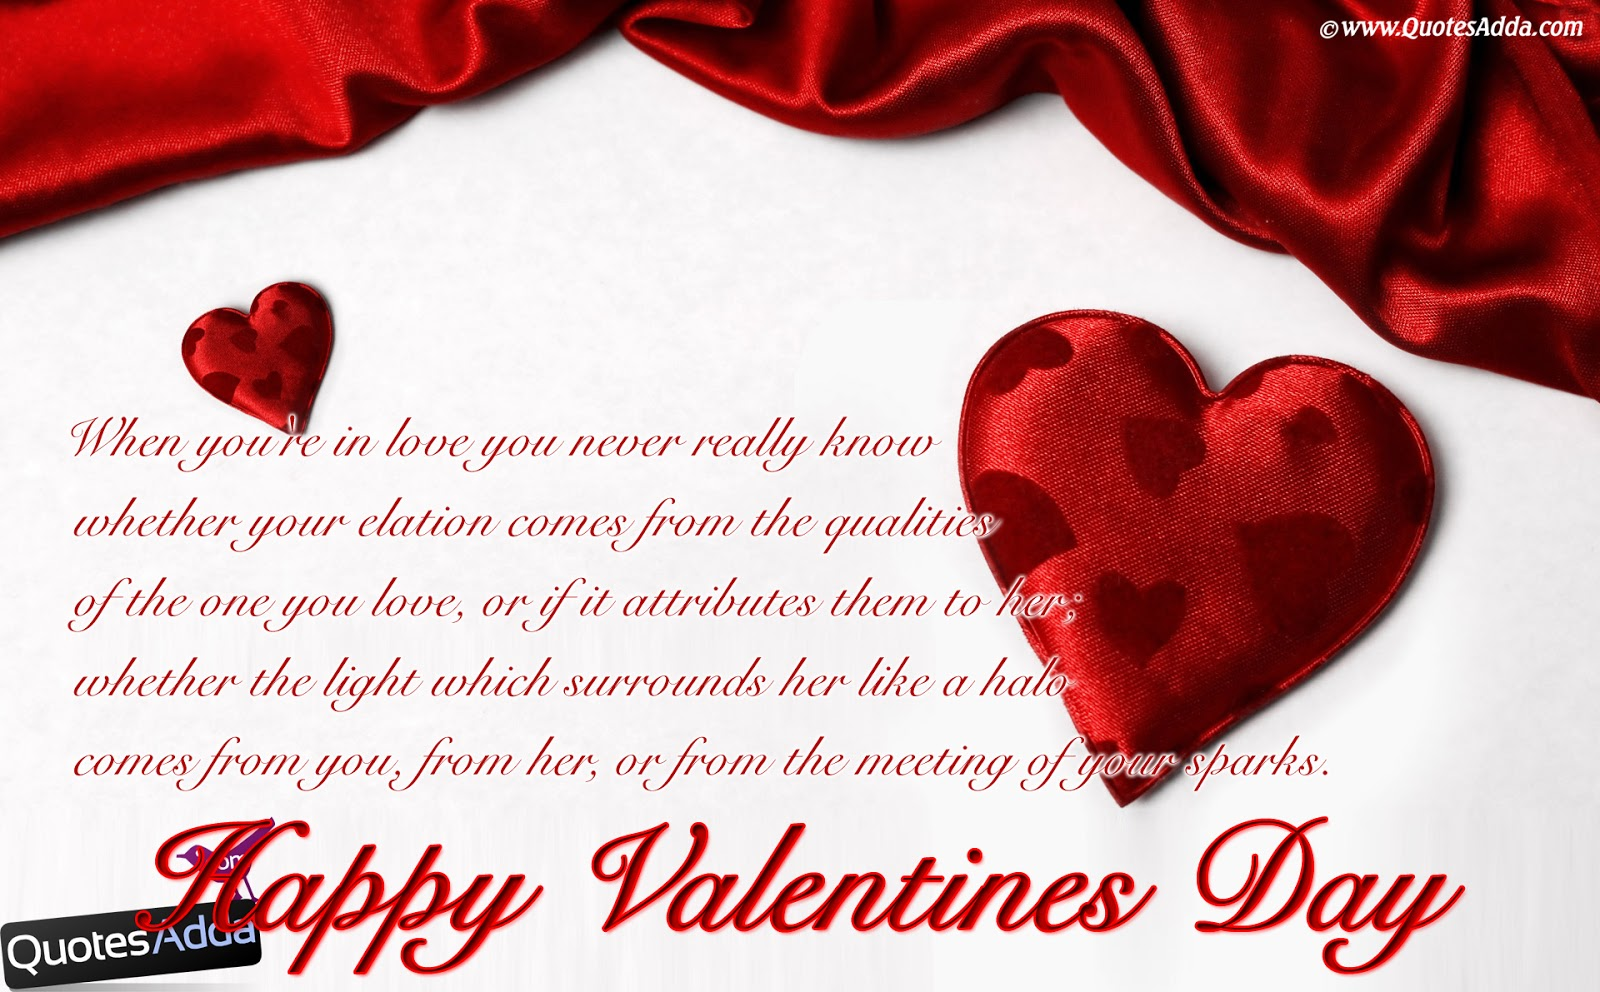 Love quotes in hindi for valentines day anti love quotes for Valentines day love quotes